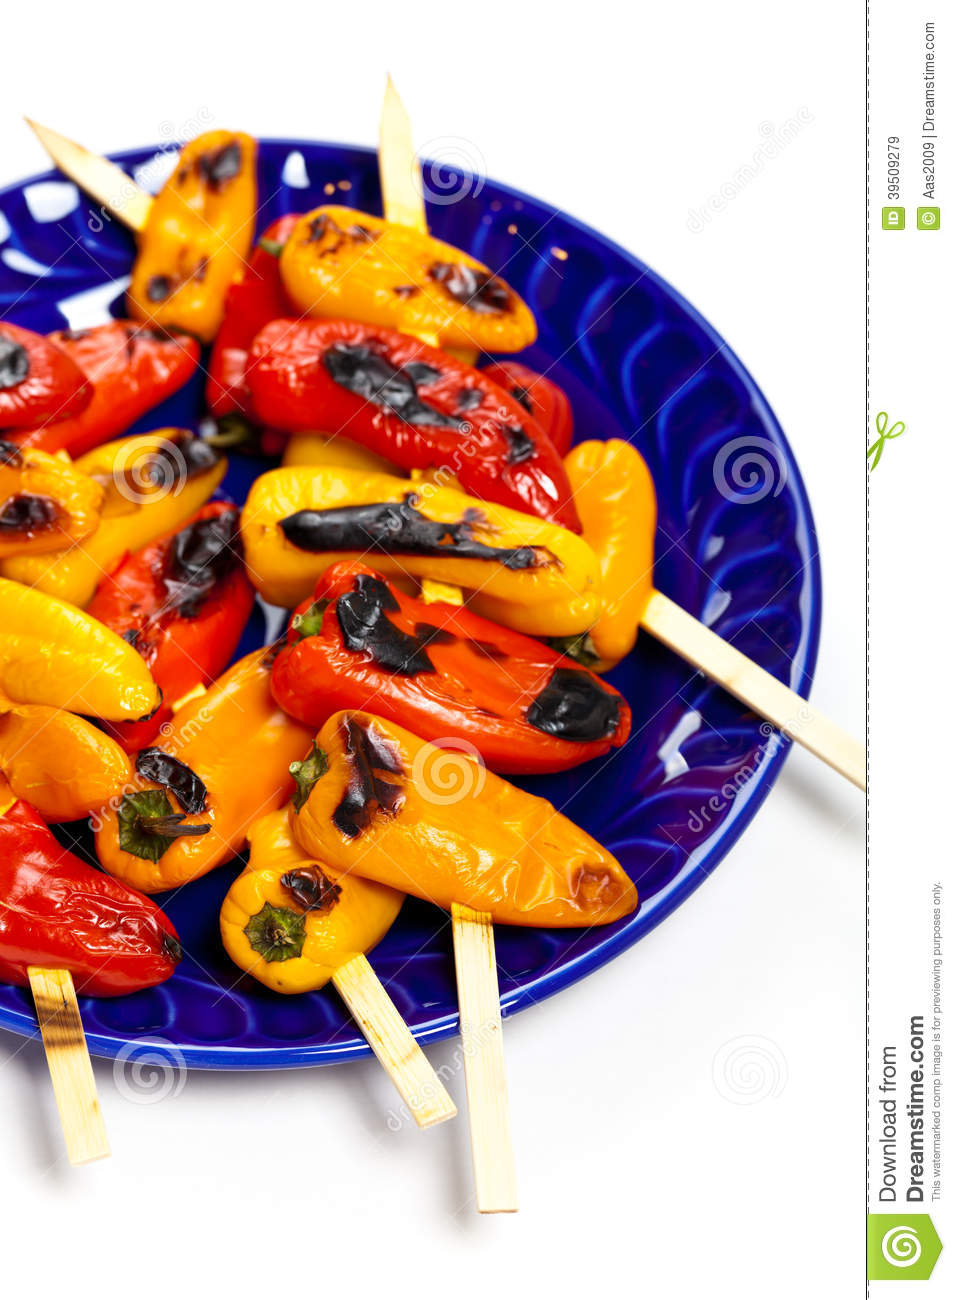 Download Grilled Mini Sweet Peppers stock image. Image of grilled - 39509279